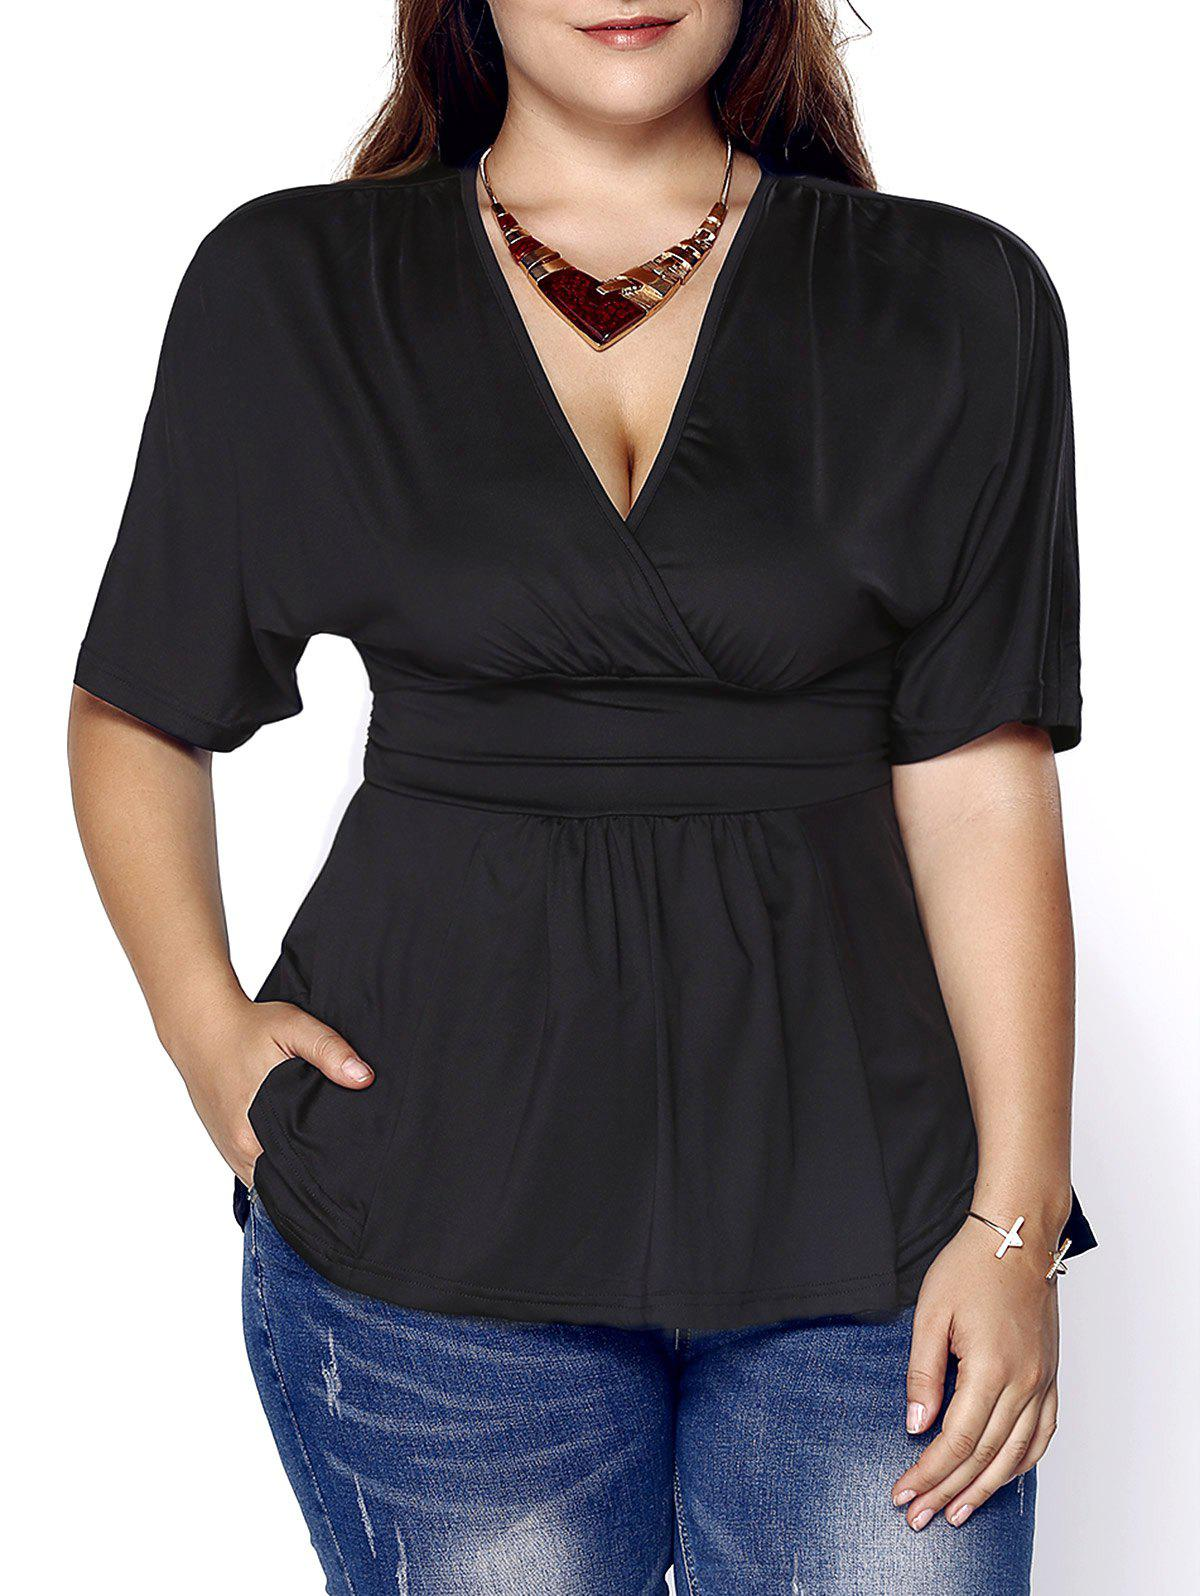 Fashionable Short Sleeve Plunging Neck Solid Color Plus Size Women's Blouse